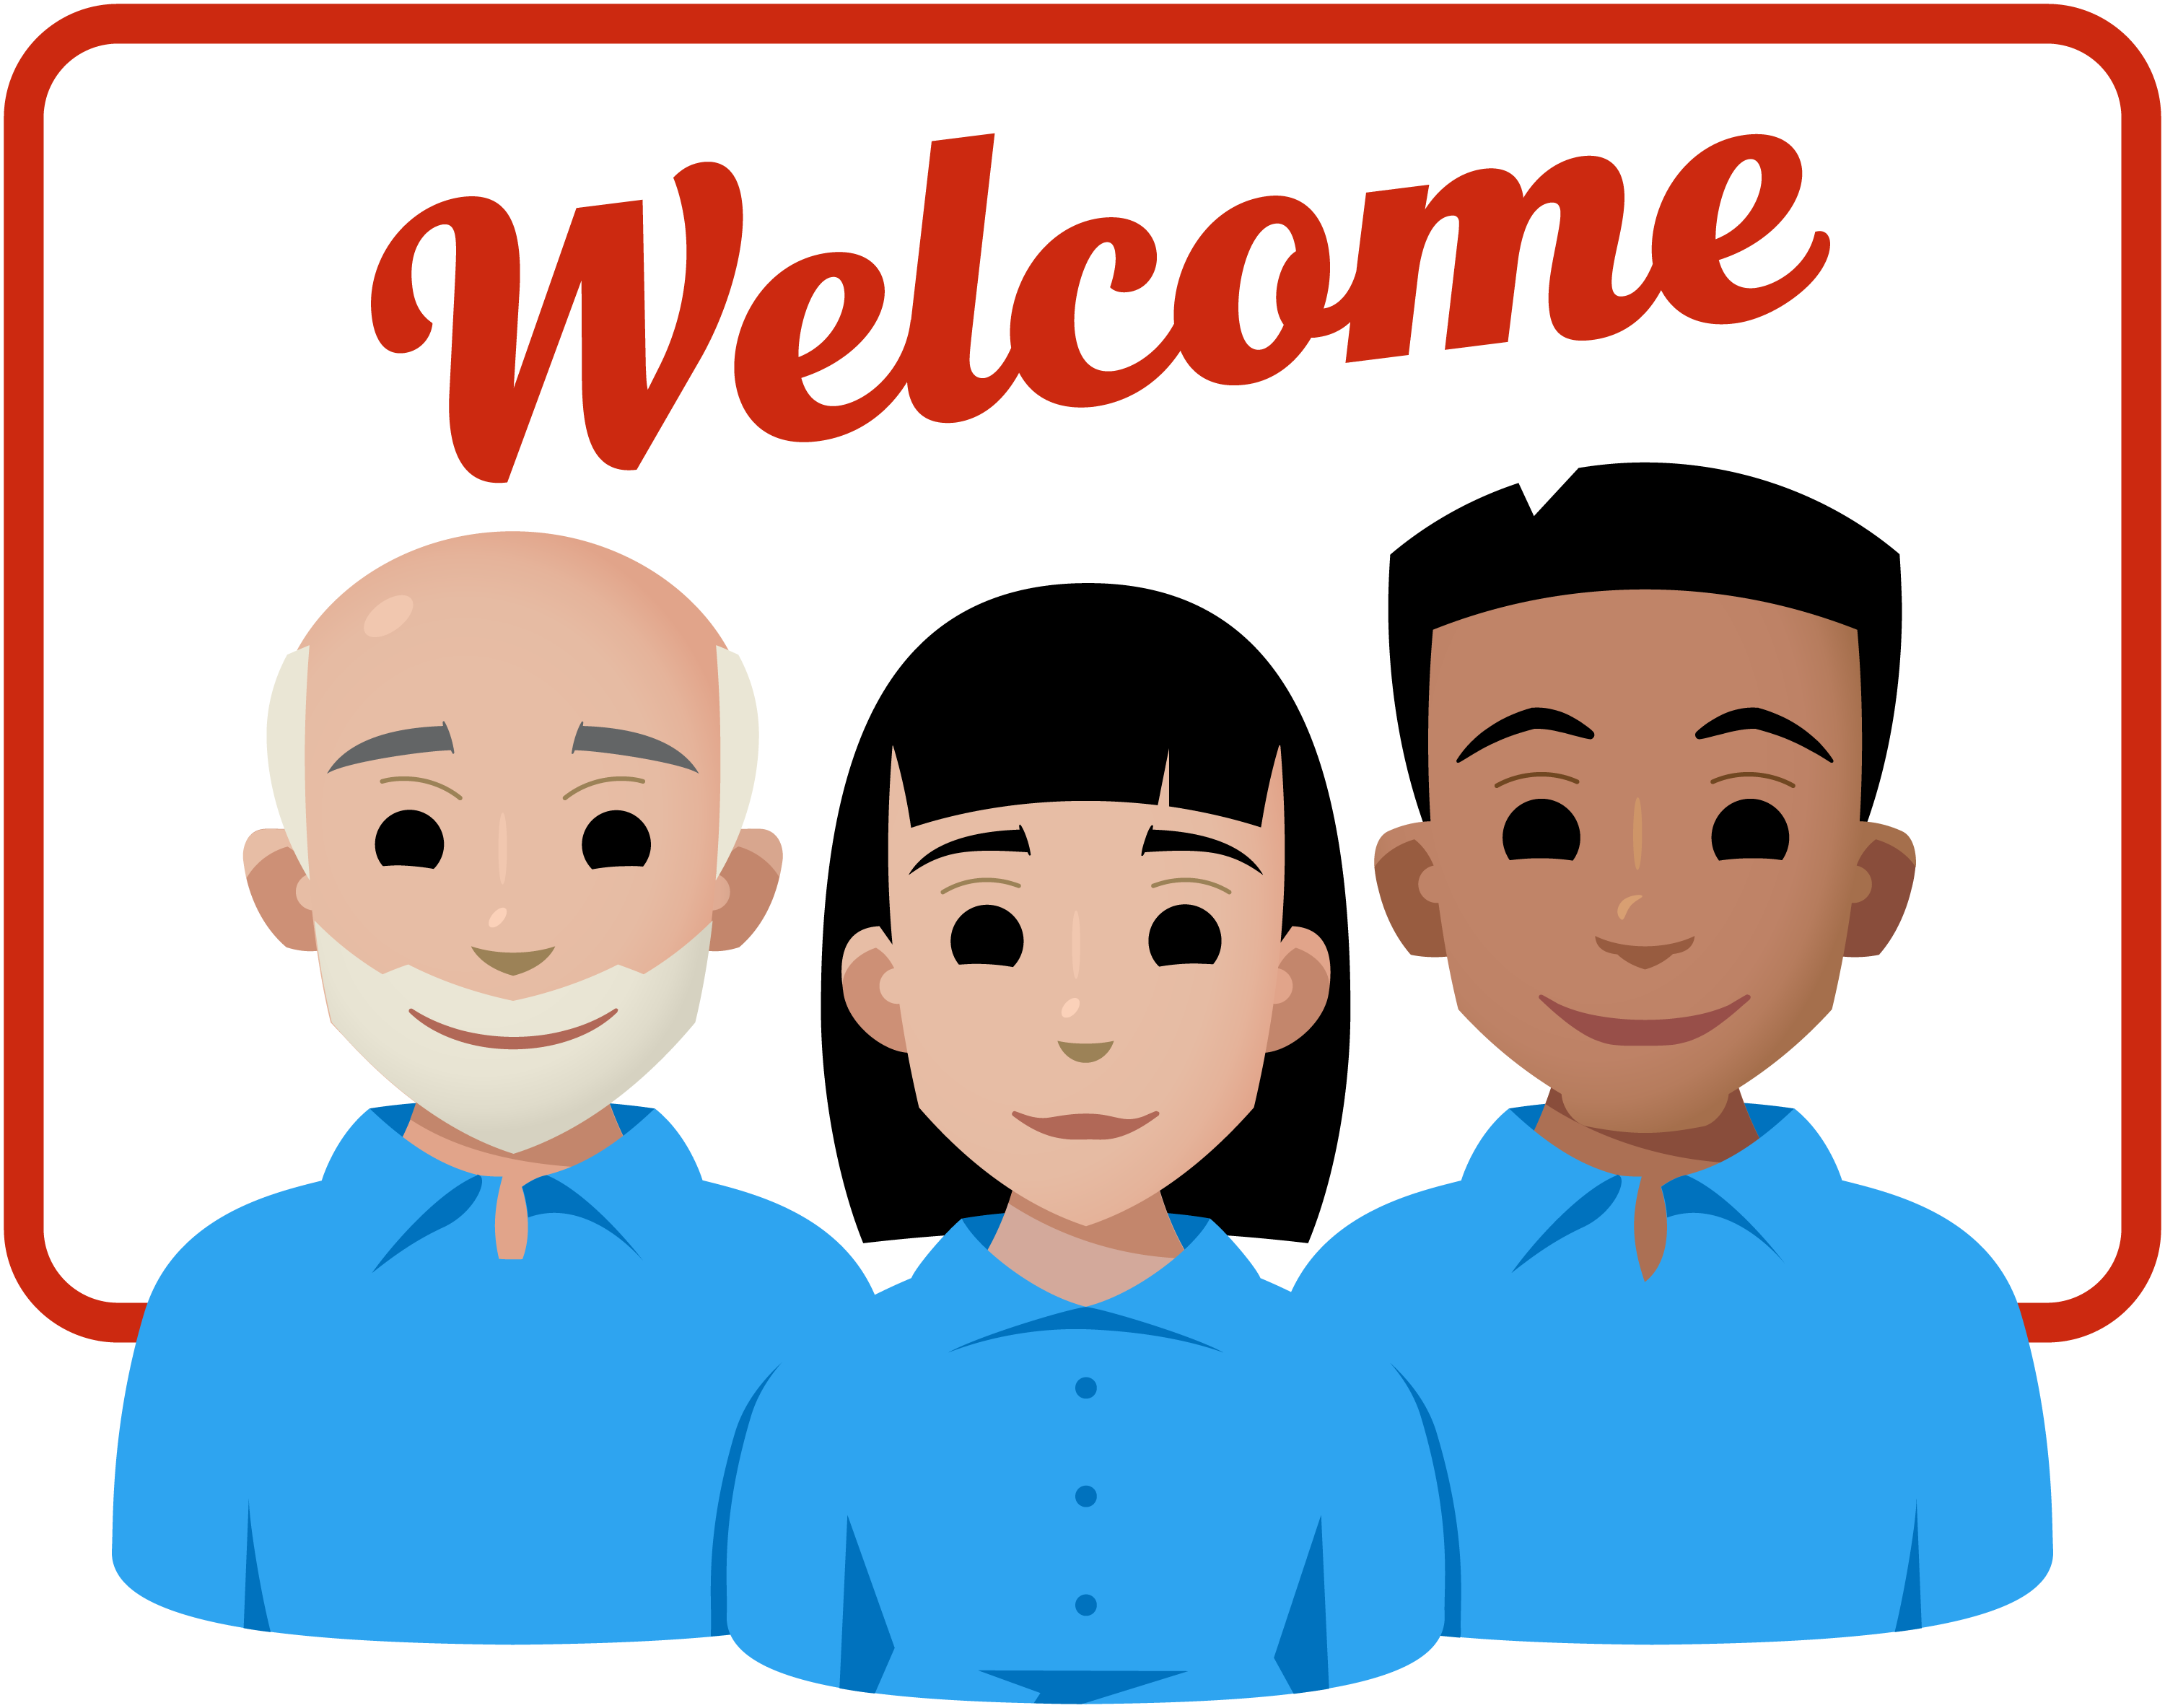 A welcome message above three line art people with blue shirts